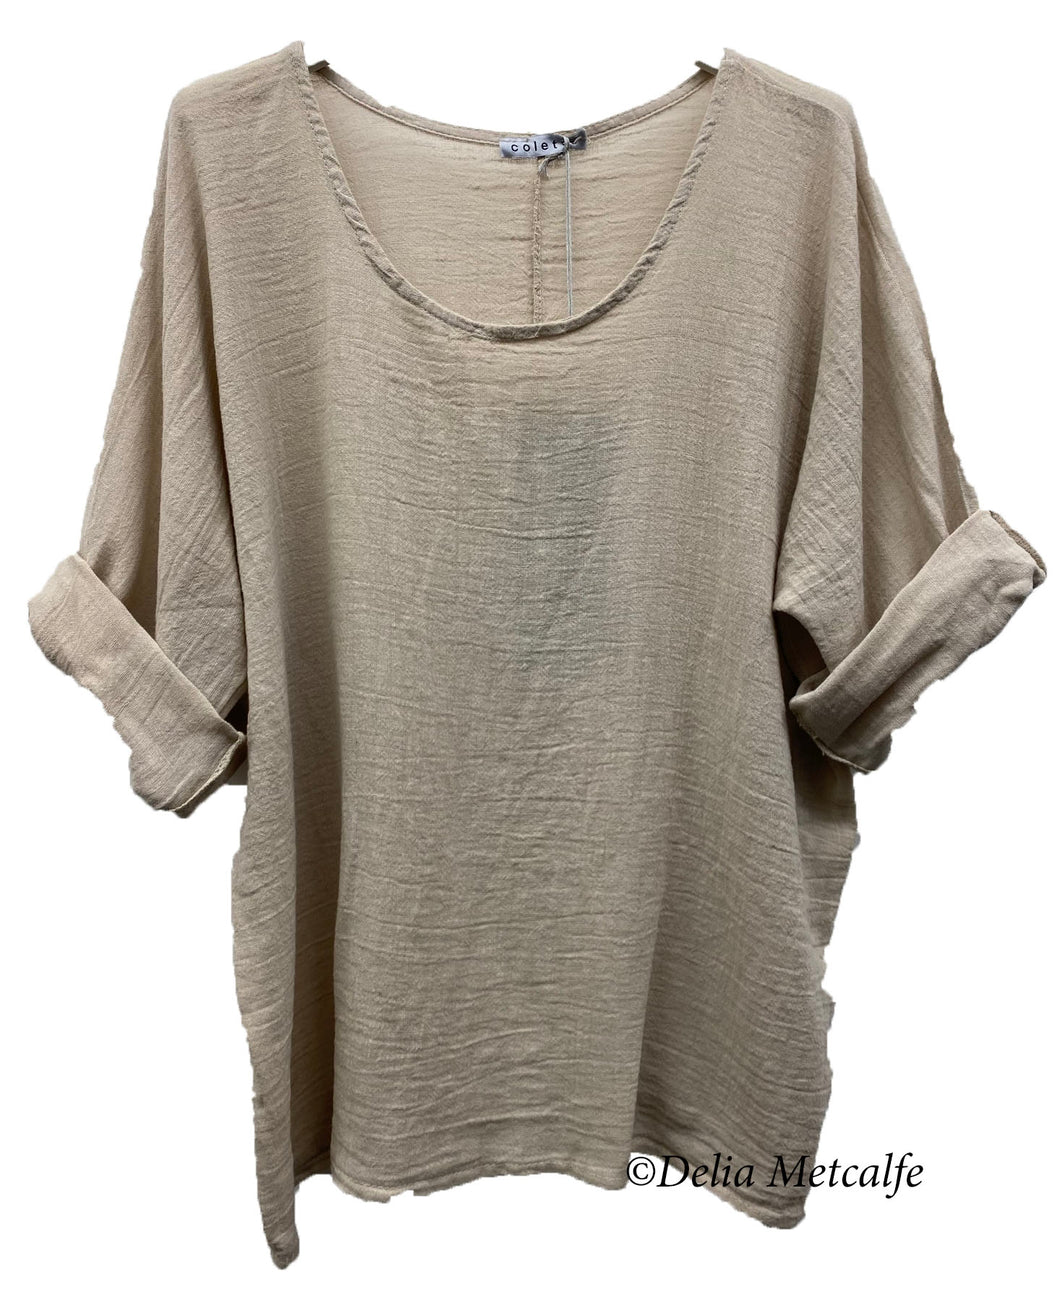 3/4 Sleeve Cotton Top